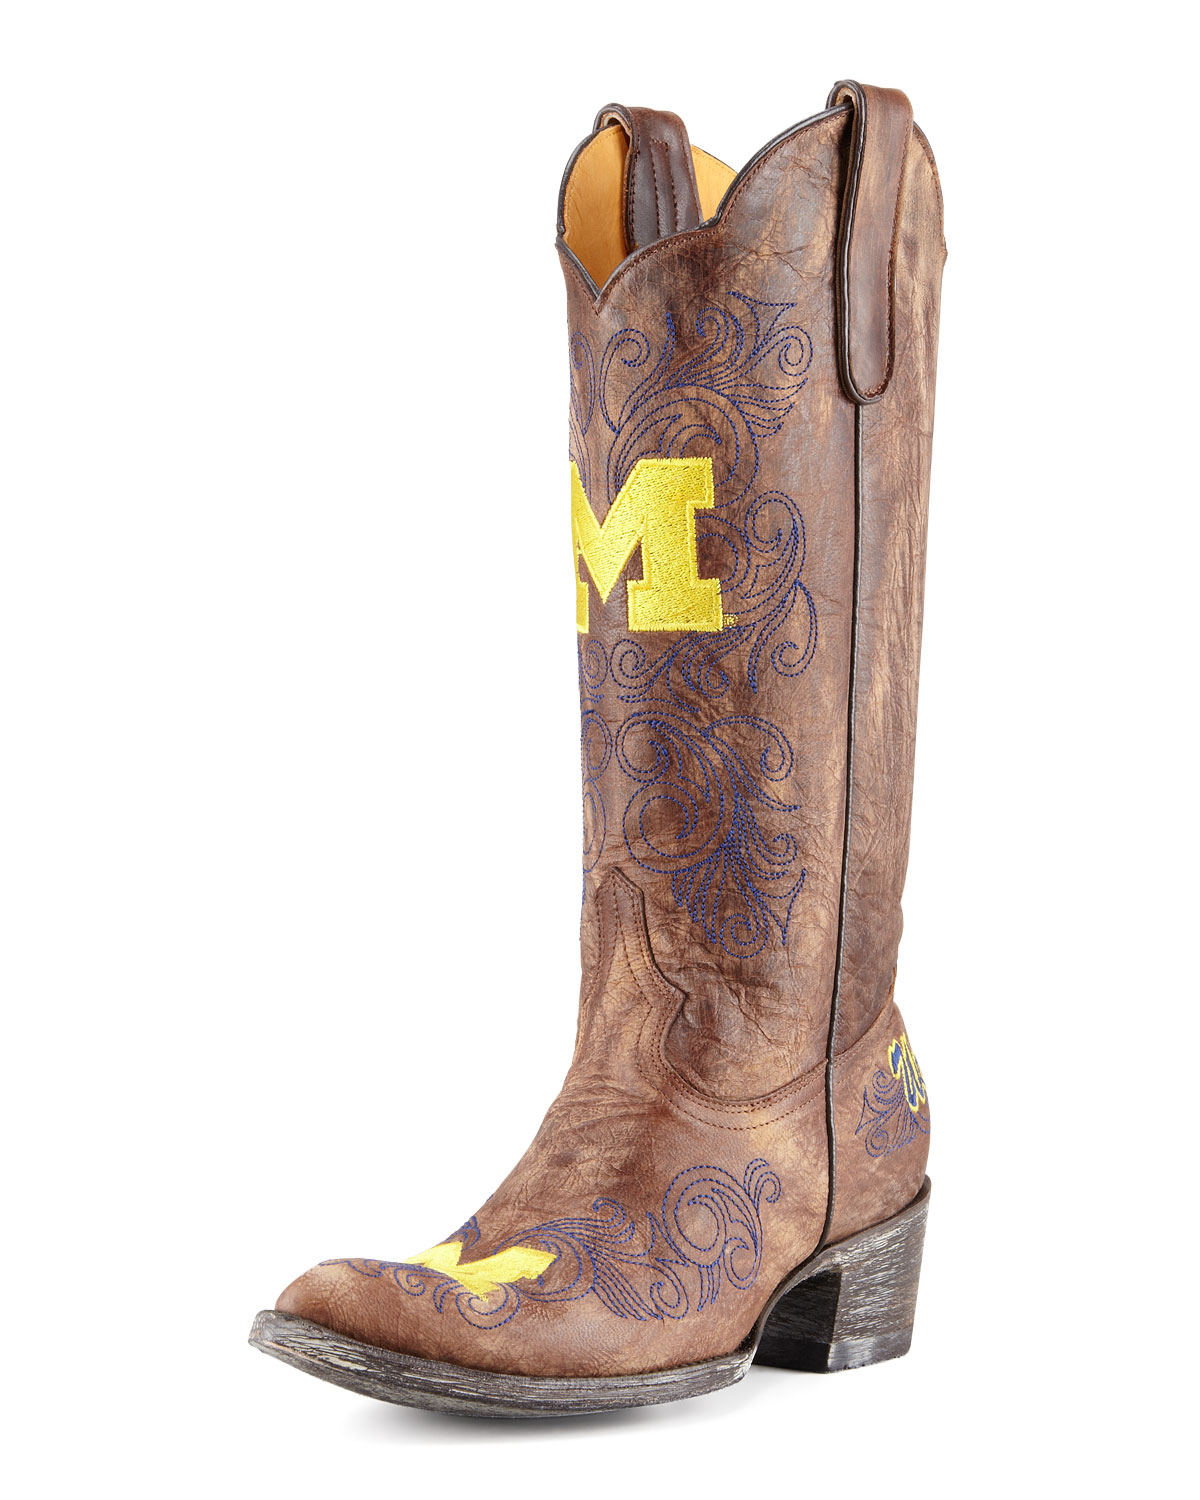 d8afc1004b7 University of Michigan Tall Gameday Boots, Brass Gameday Boot ...